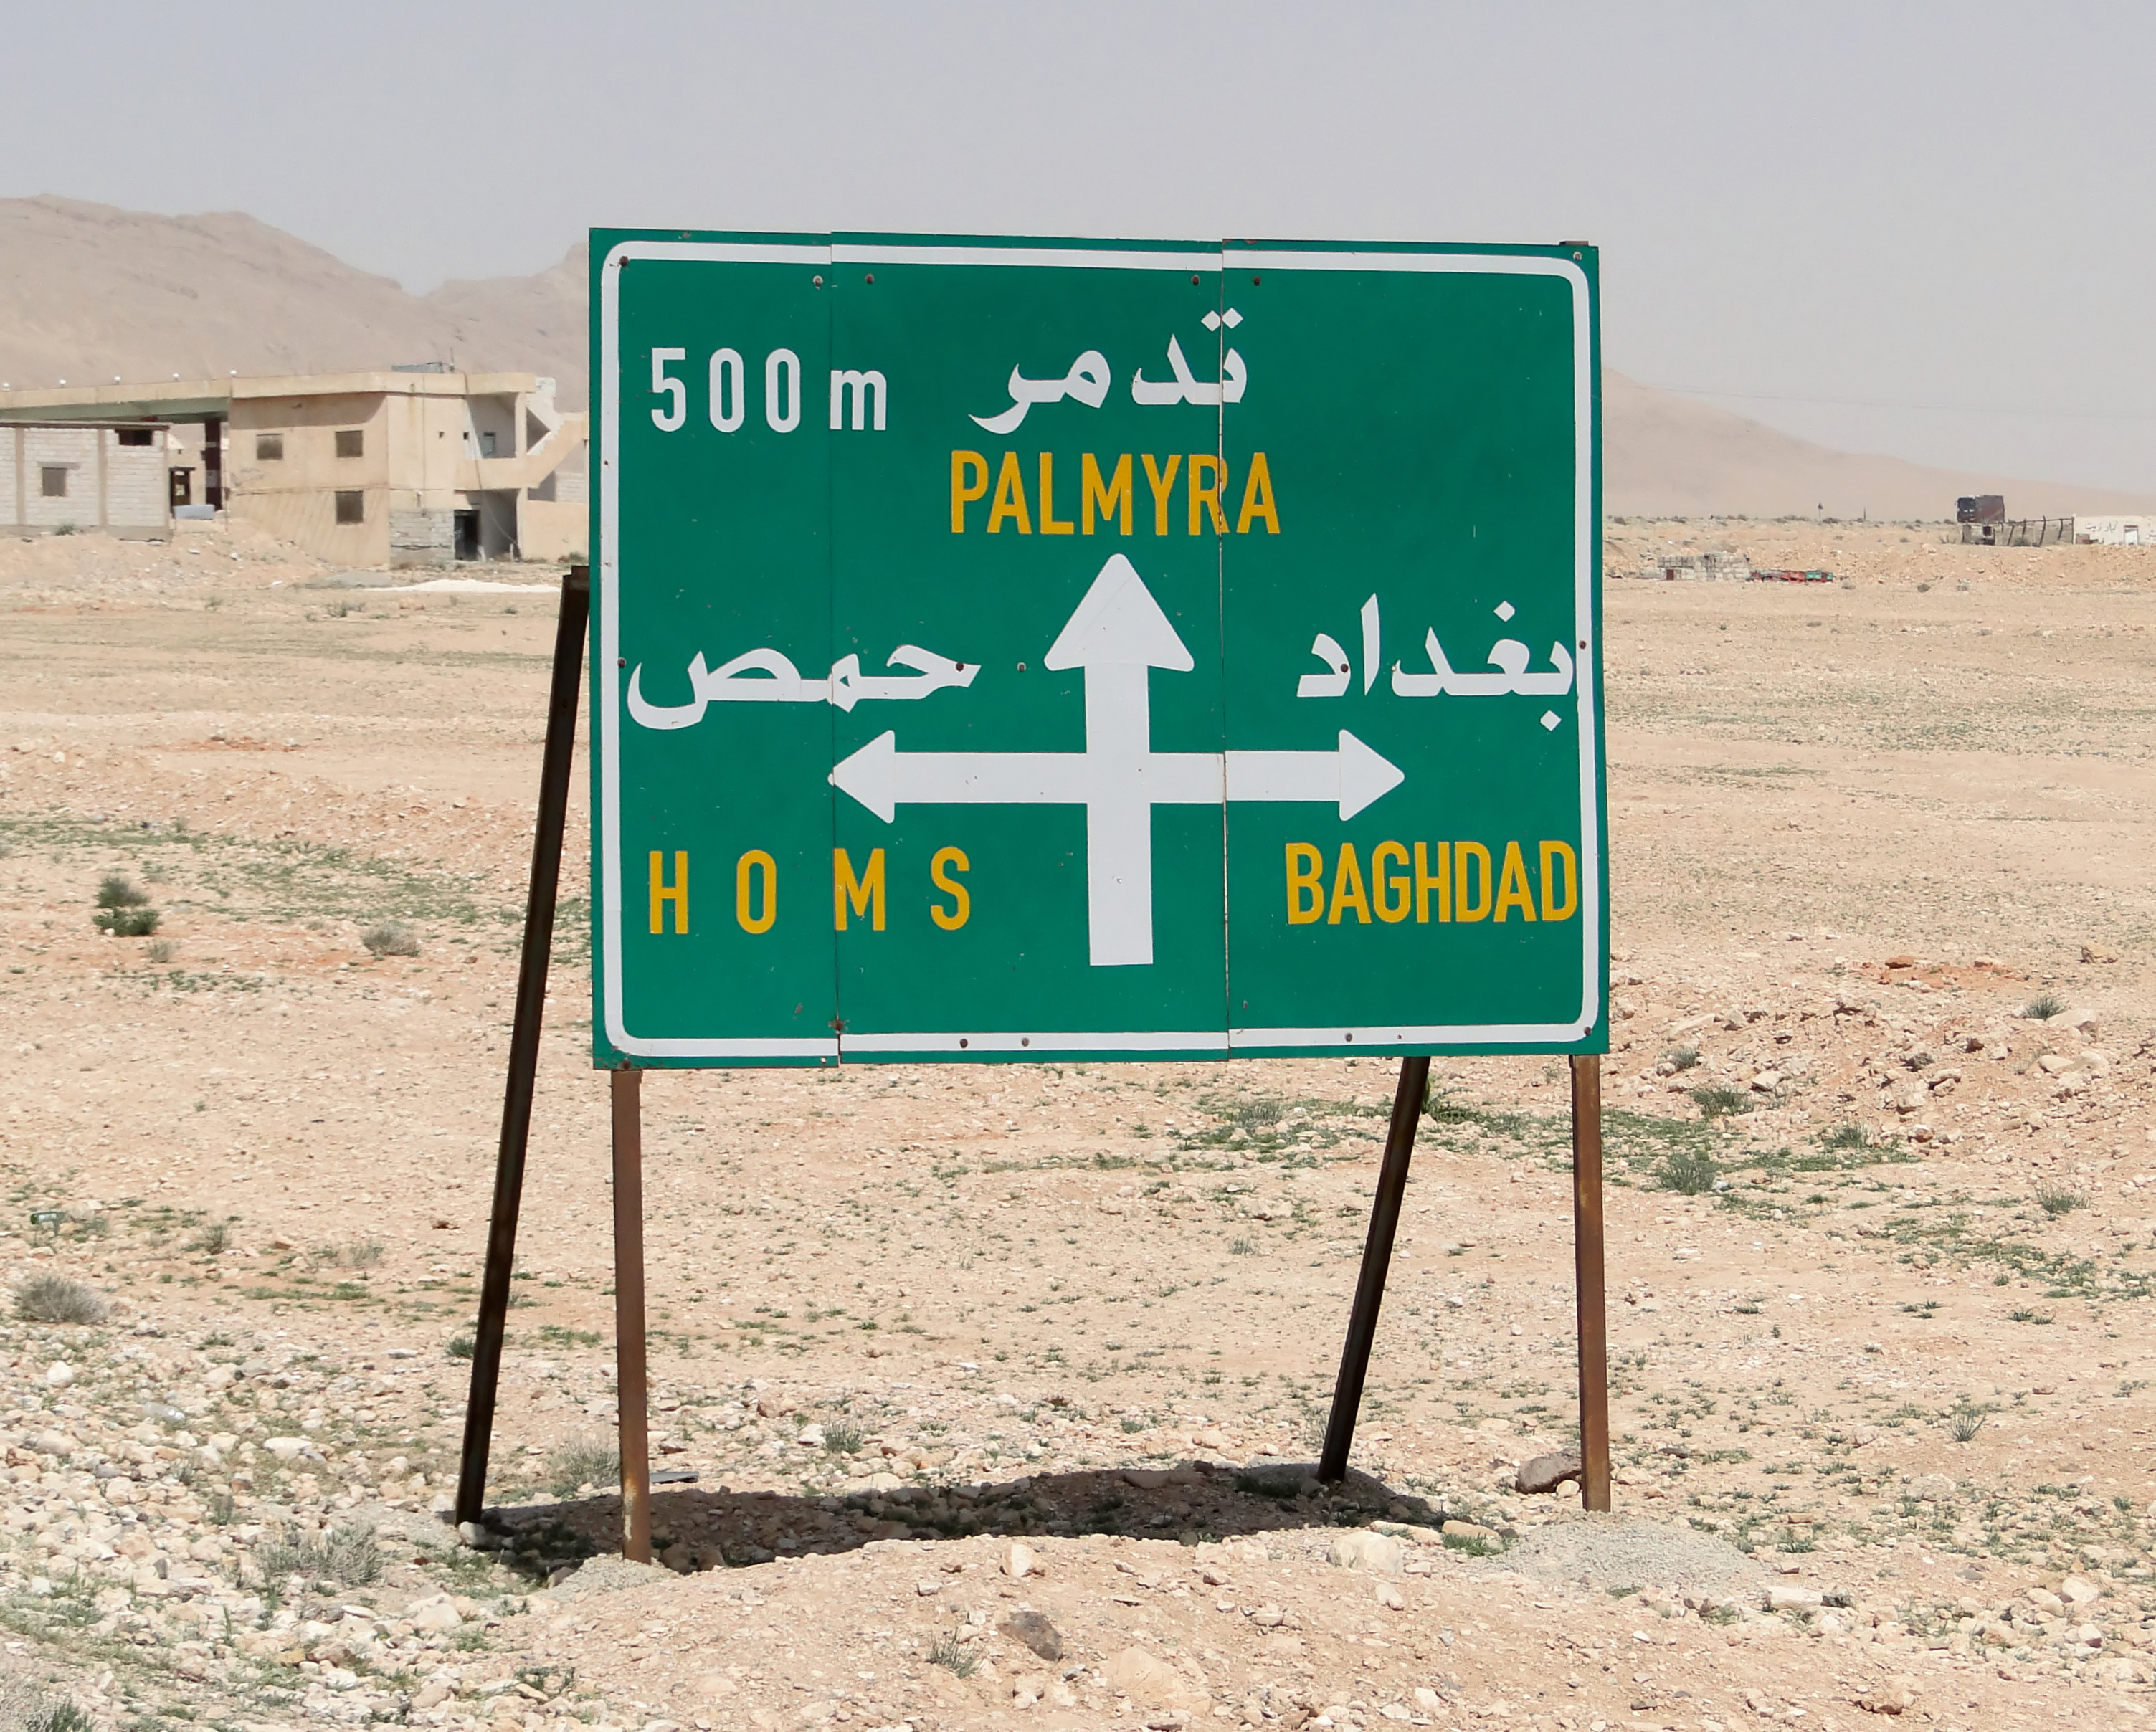 File:Road sign Homs-Palmyra-Baghdad.jpg - Wikimedia Commons Road Direction Signs